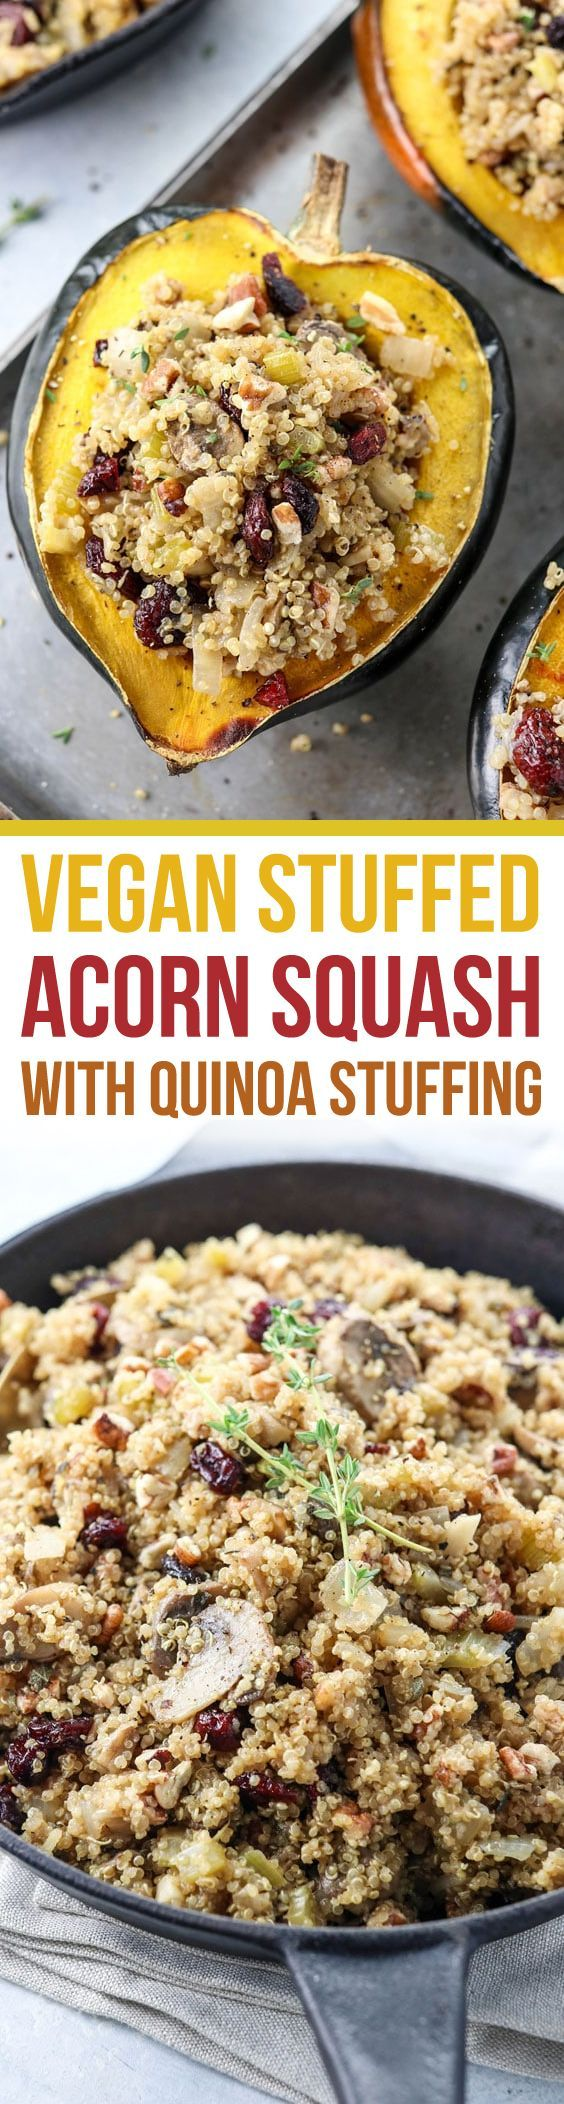 This Stuffed Squash recipe is loaded with plant-based protein, from the quinoa stuffing, and makes a great vegan or vegetarian dinner. It's perfect for a main entree for Thanksgiving or Christmas, too. Naturally gluten-free and dairy-free. https://detoxinista.com/stuffed-acorn-squash-vegan-quinoa-stuffing/